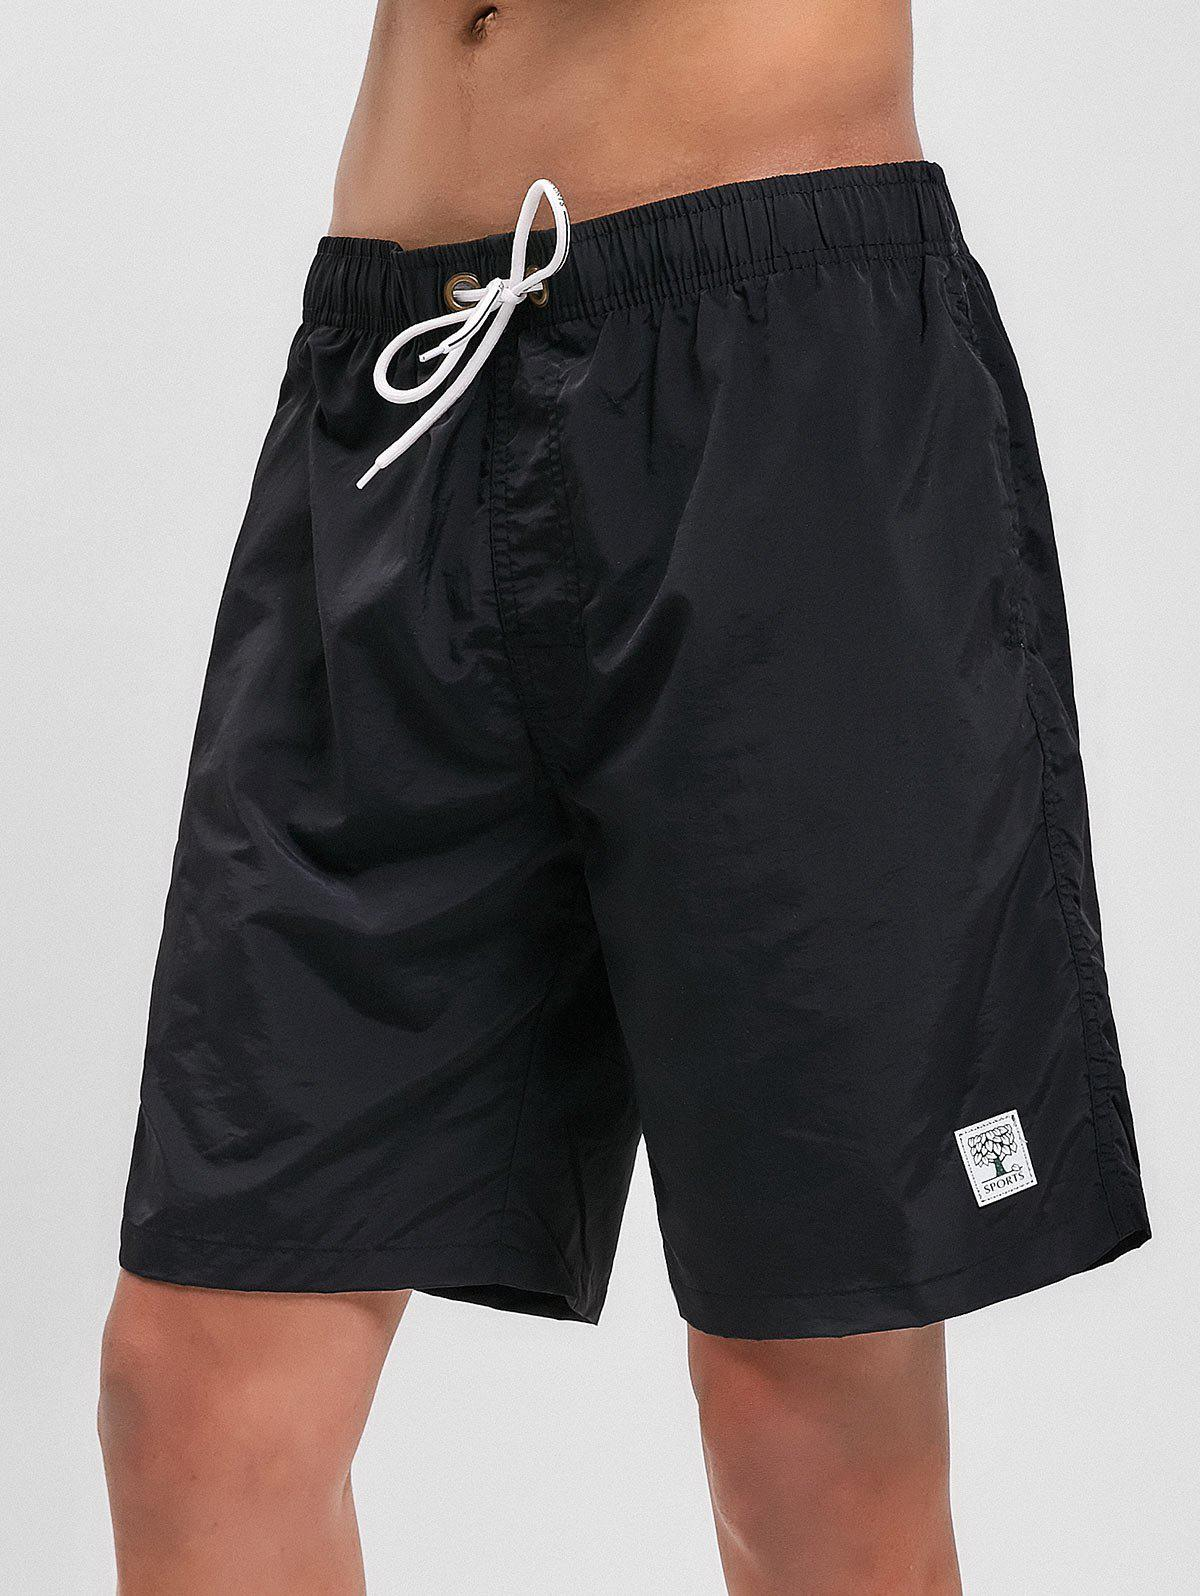 Affordable Appliques Solid Color Drawstring Board Shorts